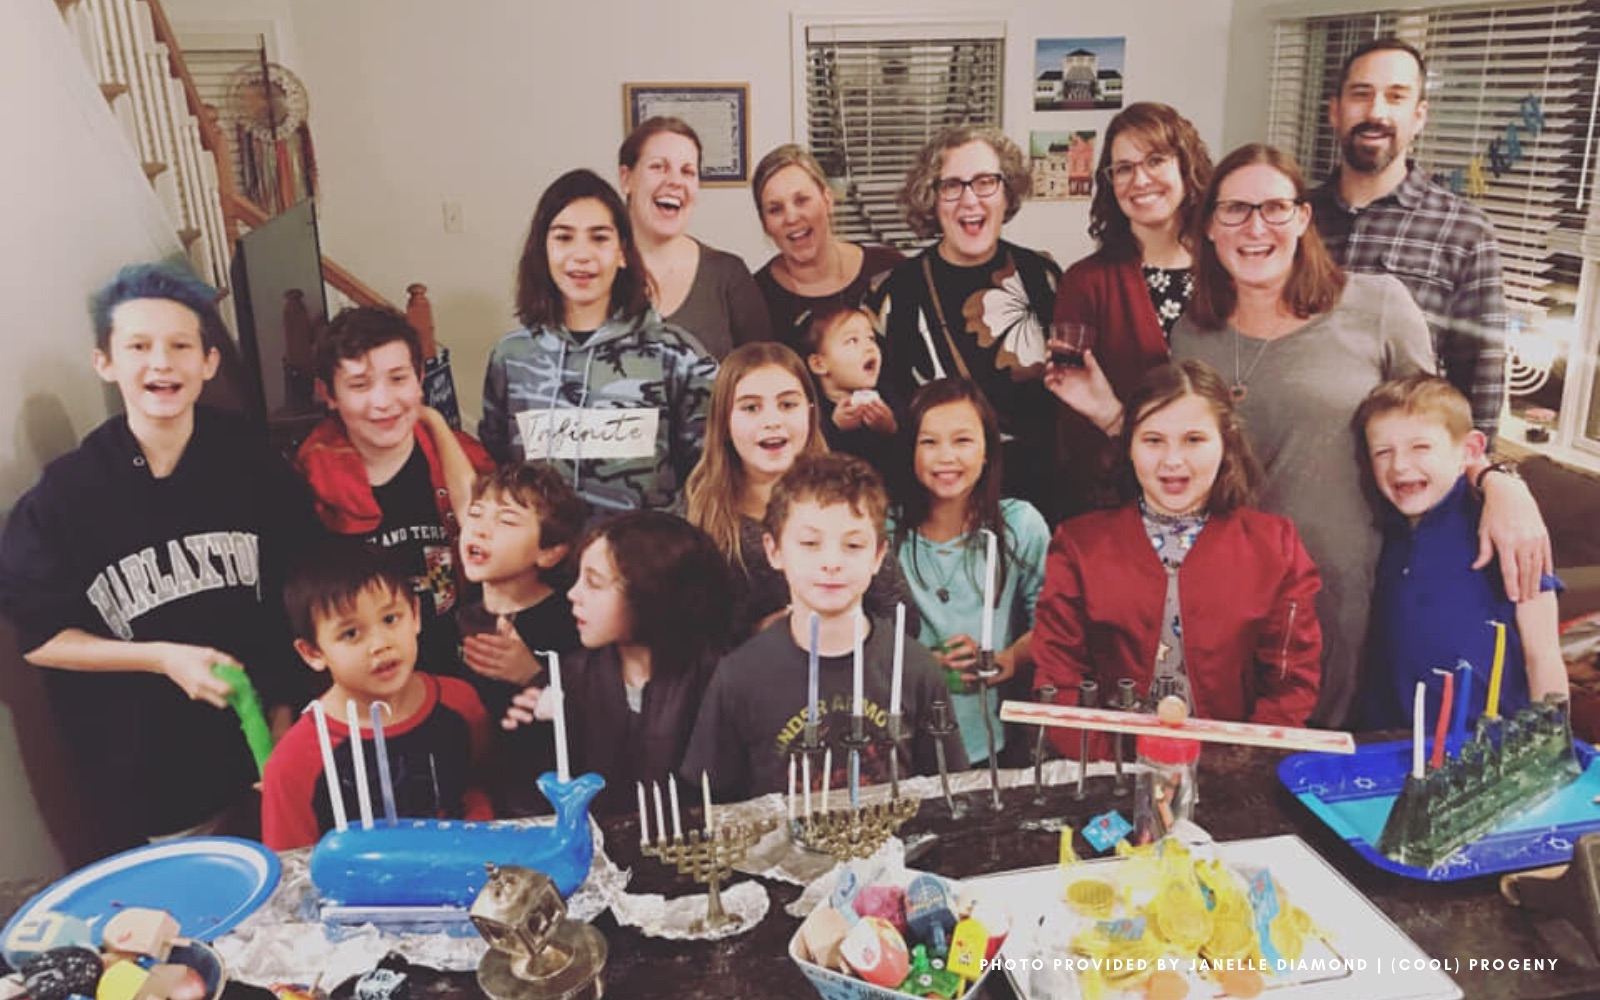 Spreading Hanukkah Cheer One Latke at a Time - (cool) progeny